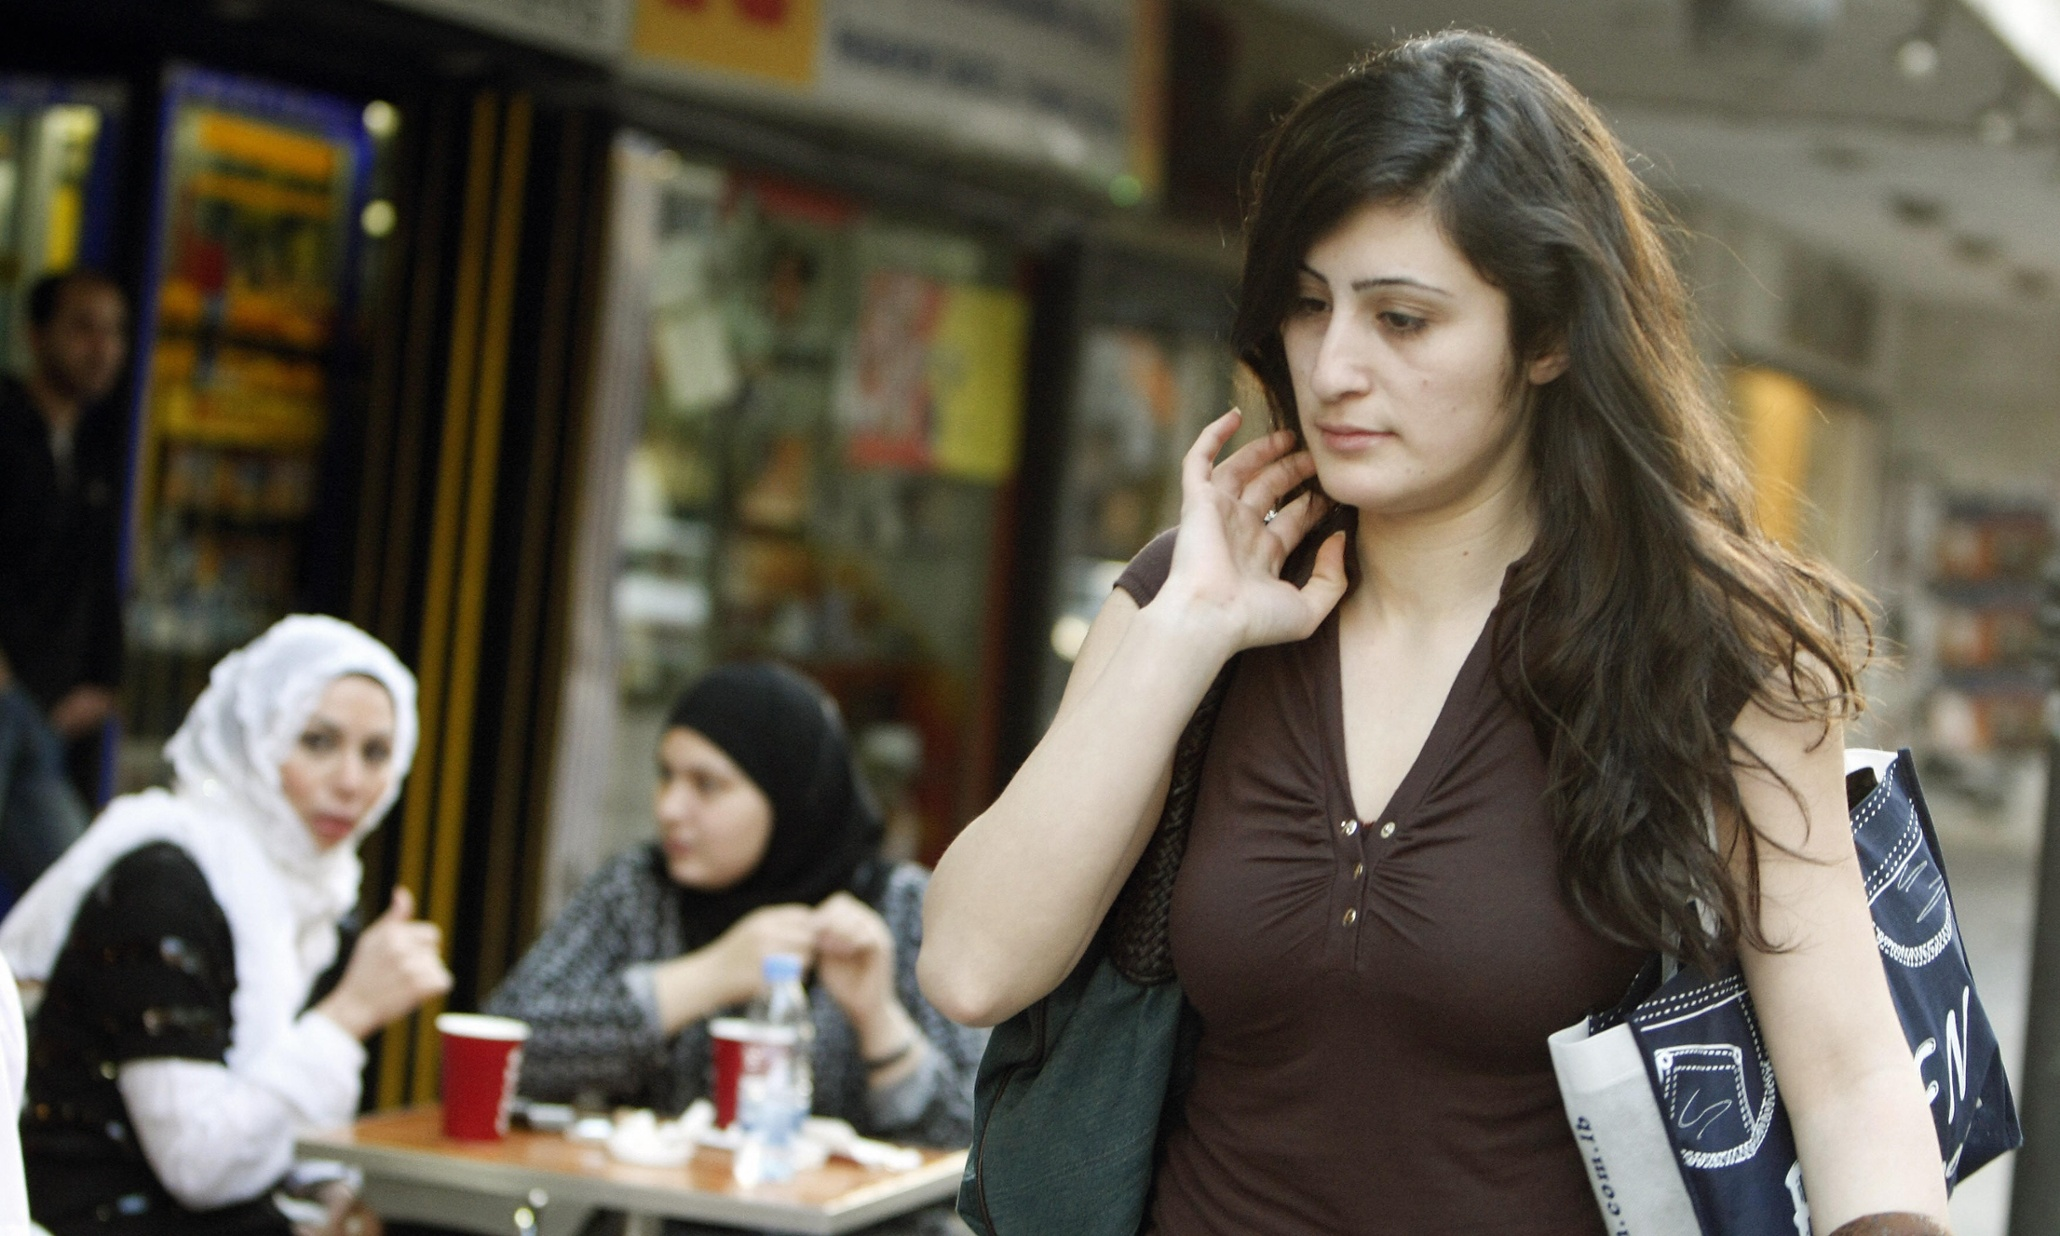 Don't call me oppressed because I'm an Arab woman. It denies me the right to my own experience